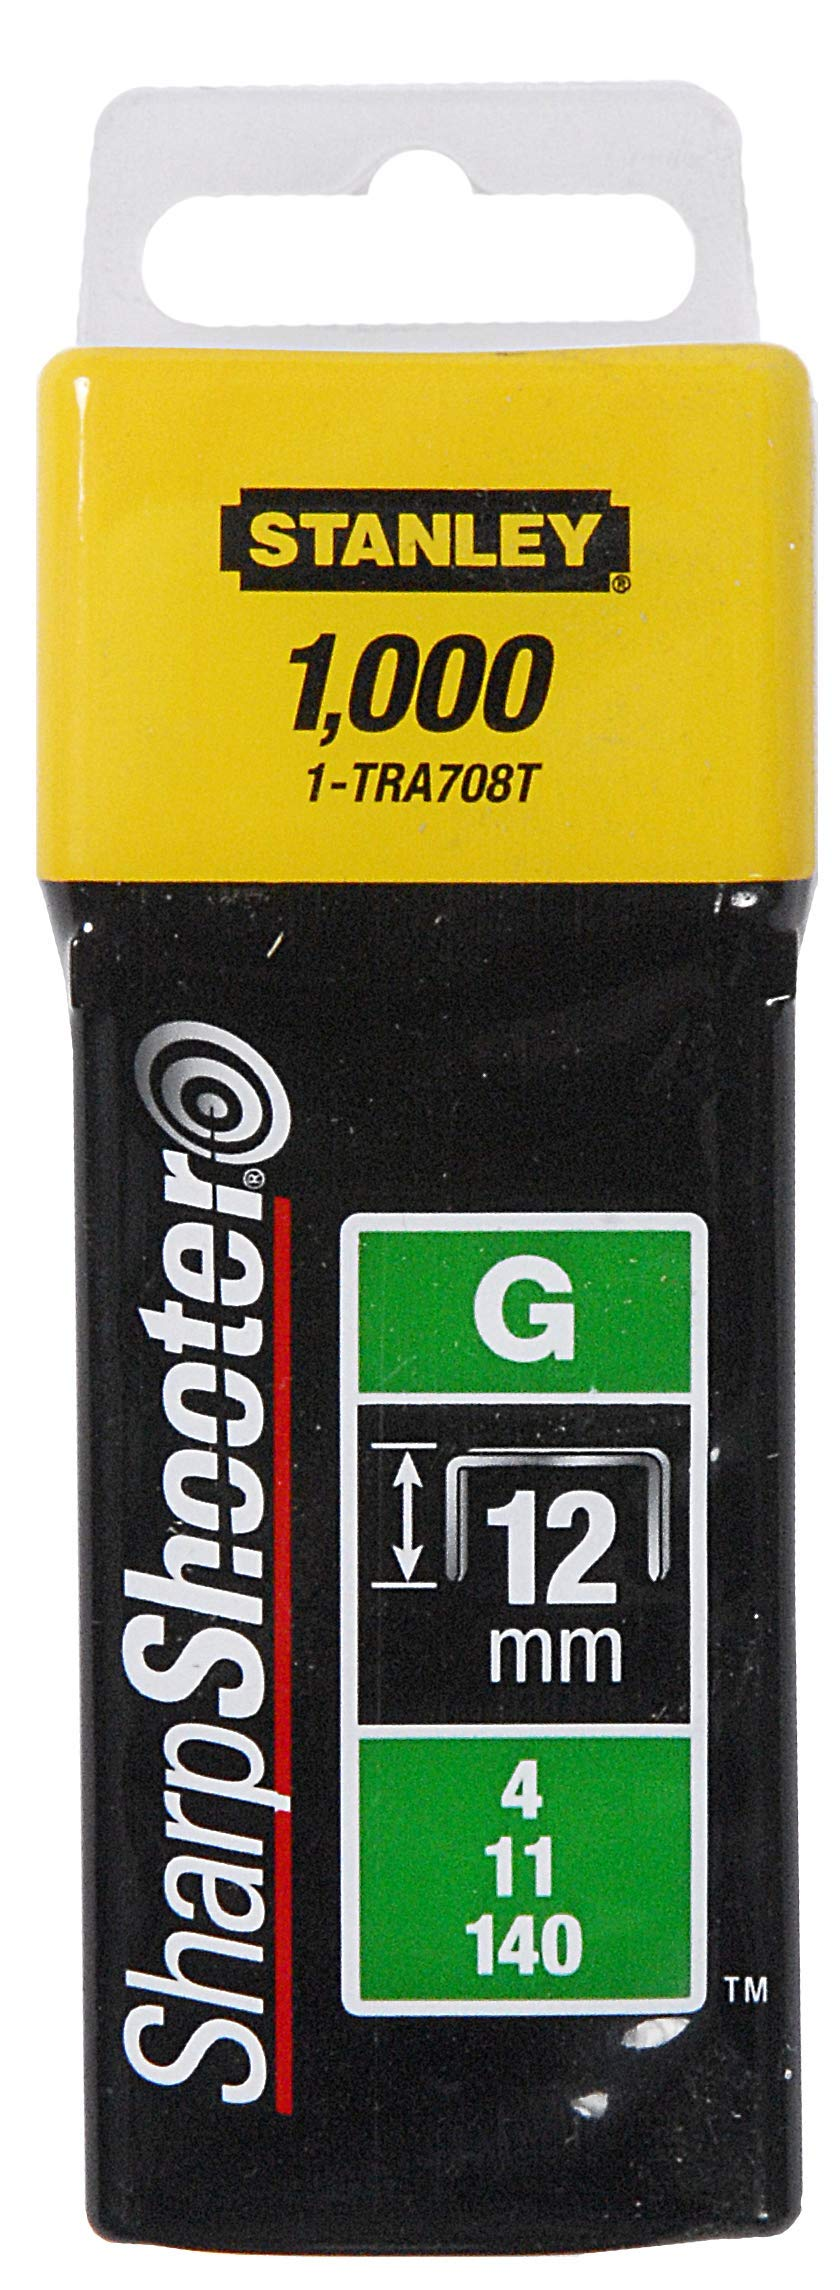 Stanley TRA708T Sharpshooter 1/2-Inch Leg Length Staples, Steel (1000 Count)